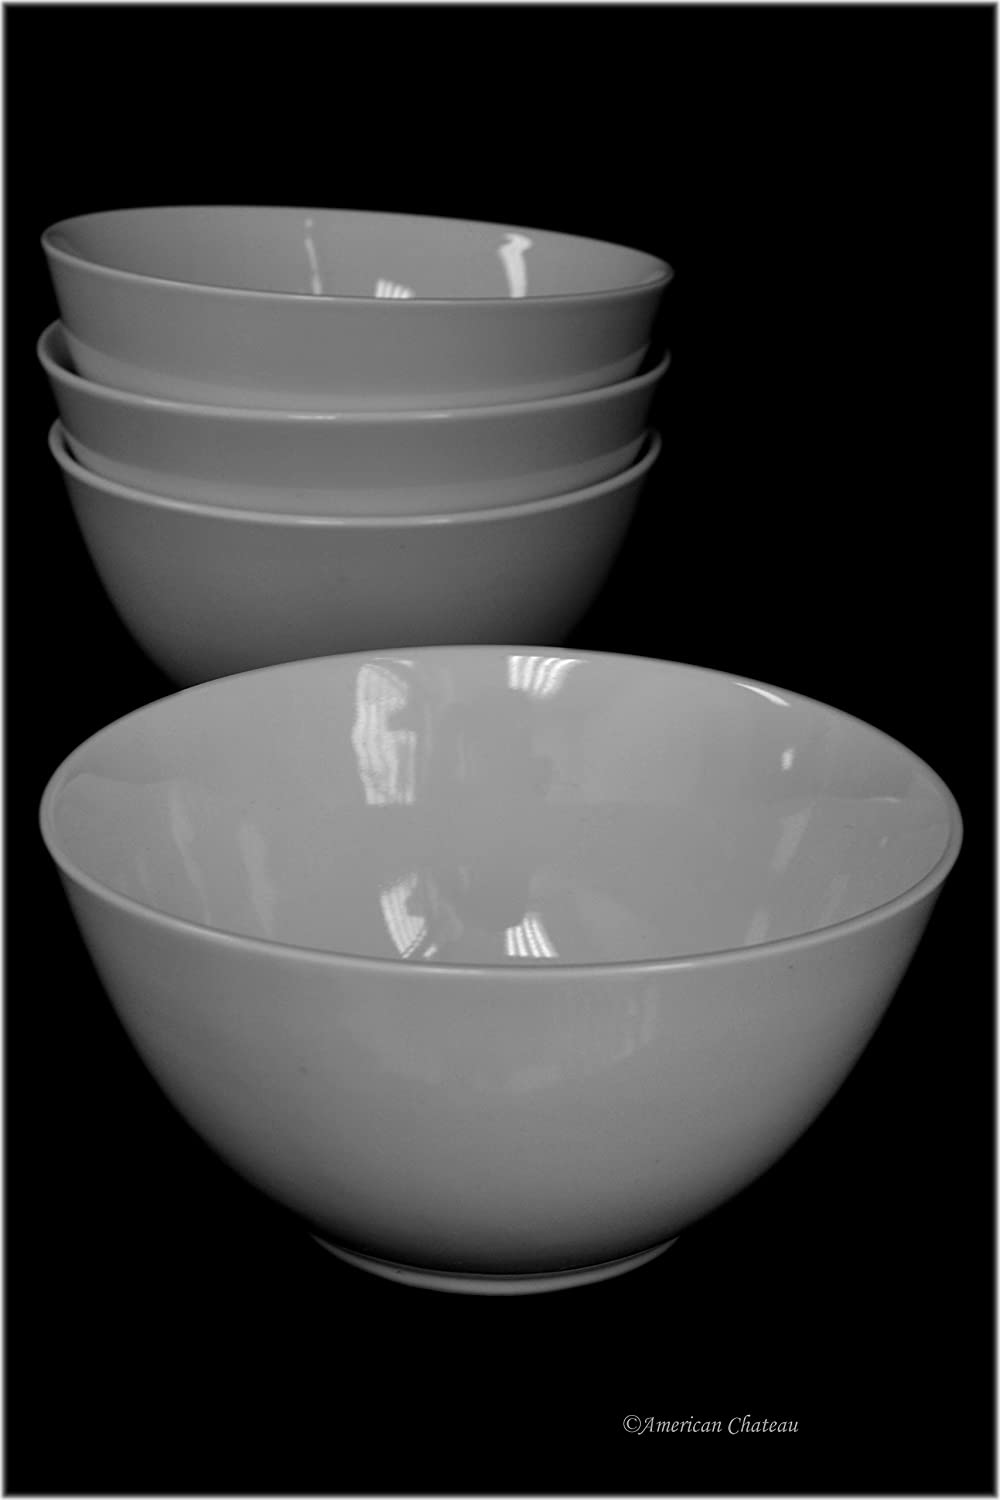 Set 4 Large 20oz Wide-Mouth White Porcelain Crock Dish Soup Cereal Bowls American Chateau